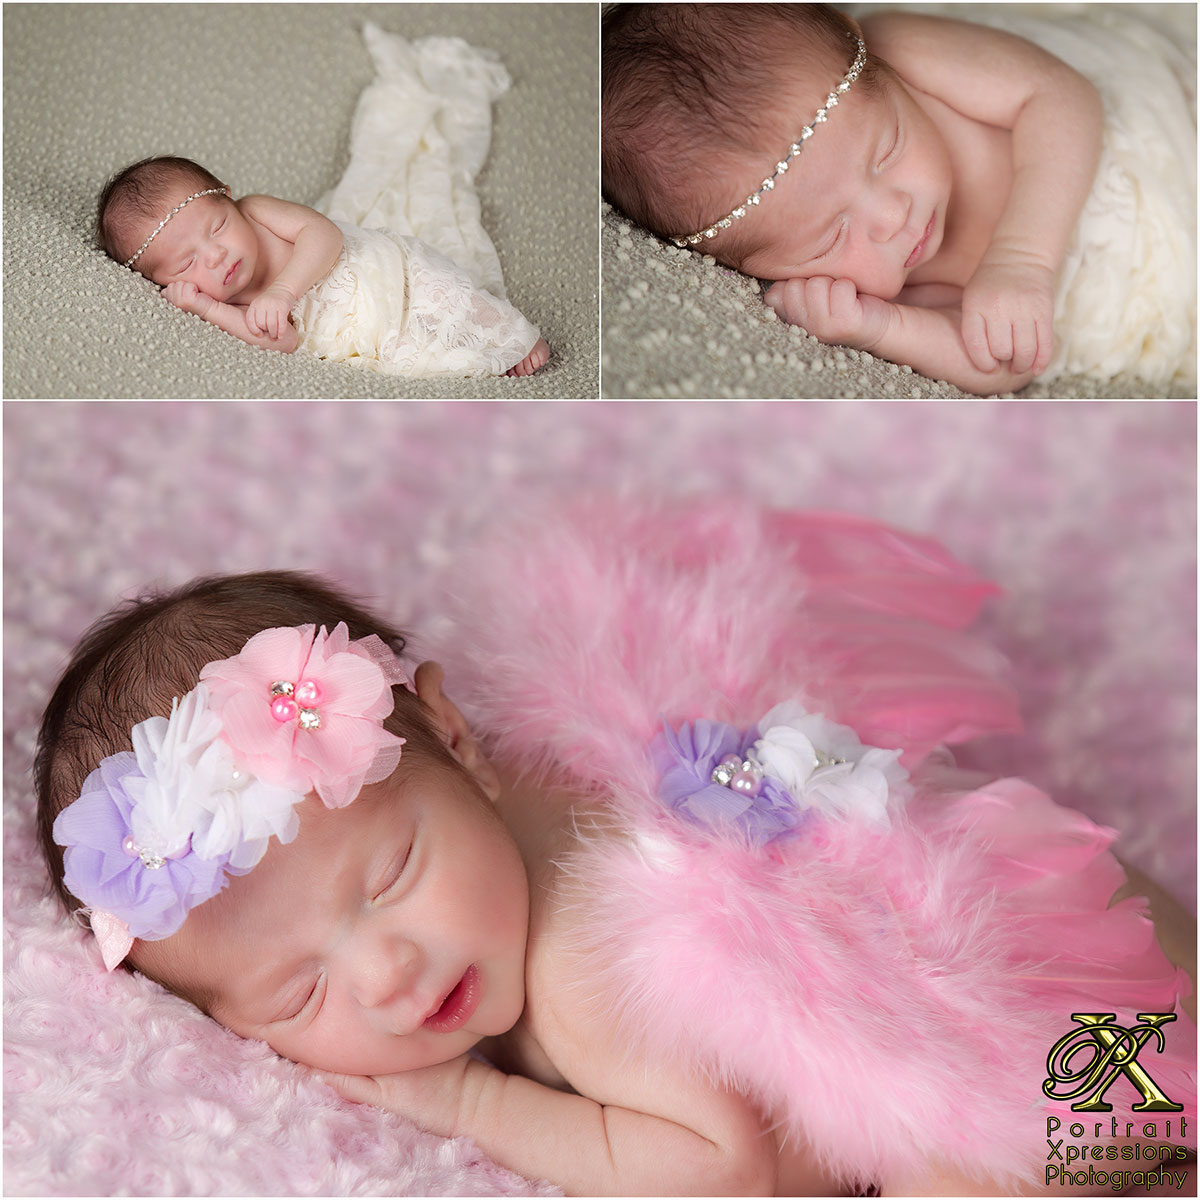 baby with pink wings